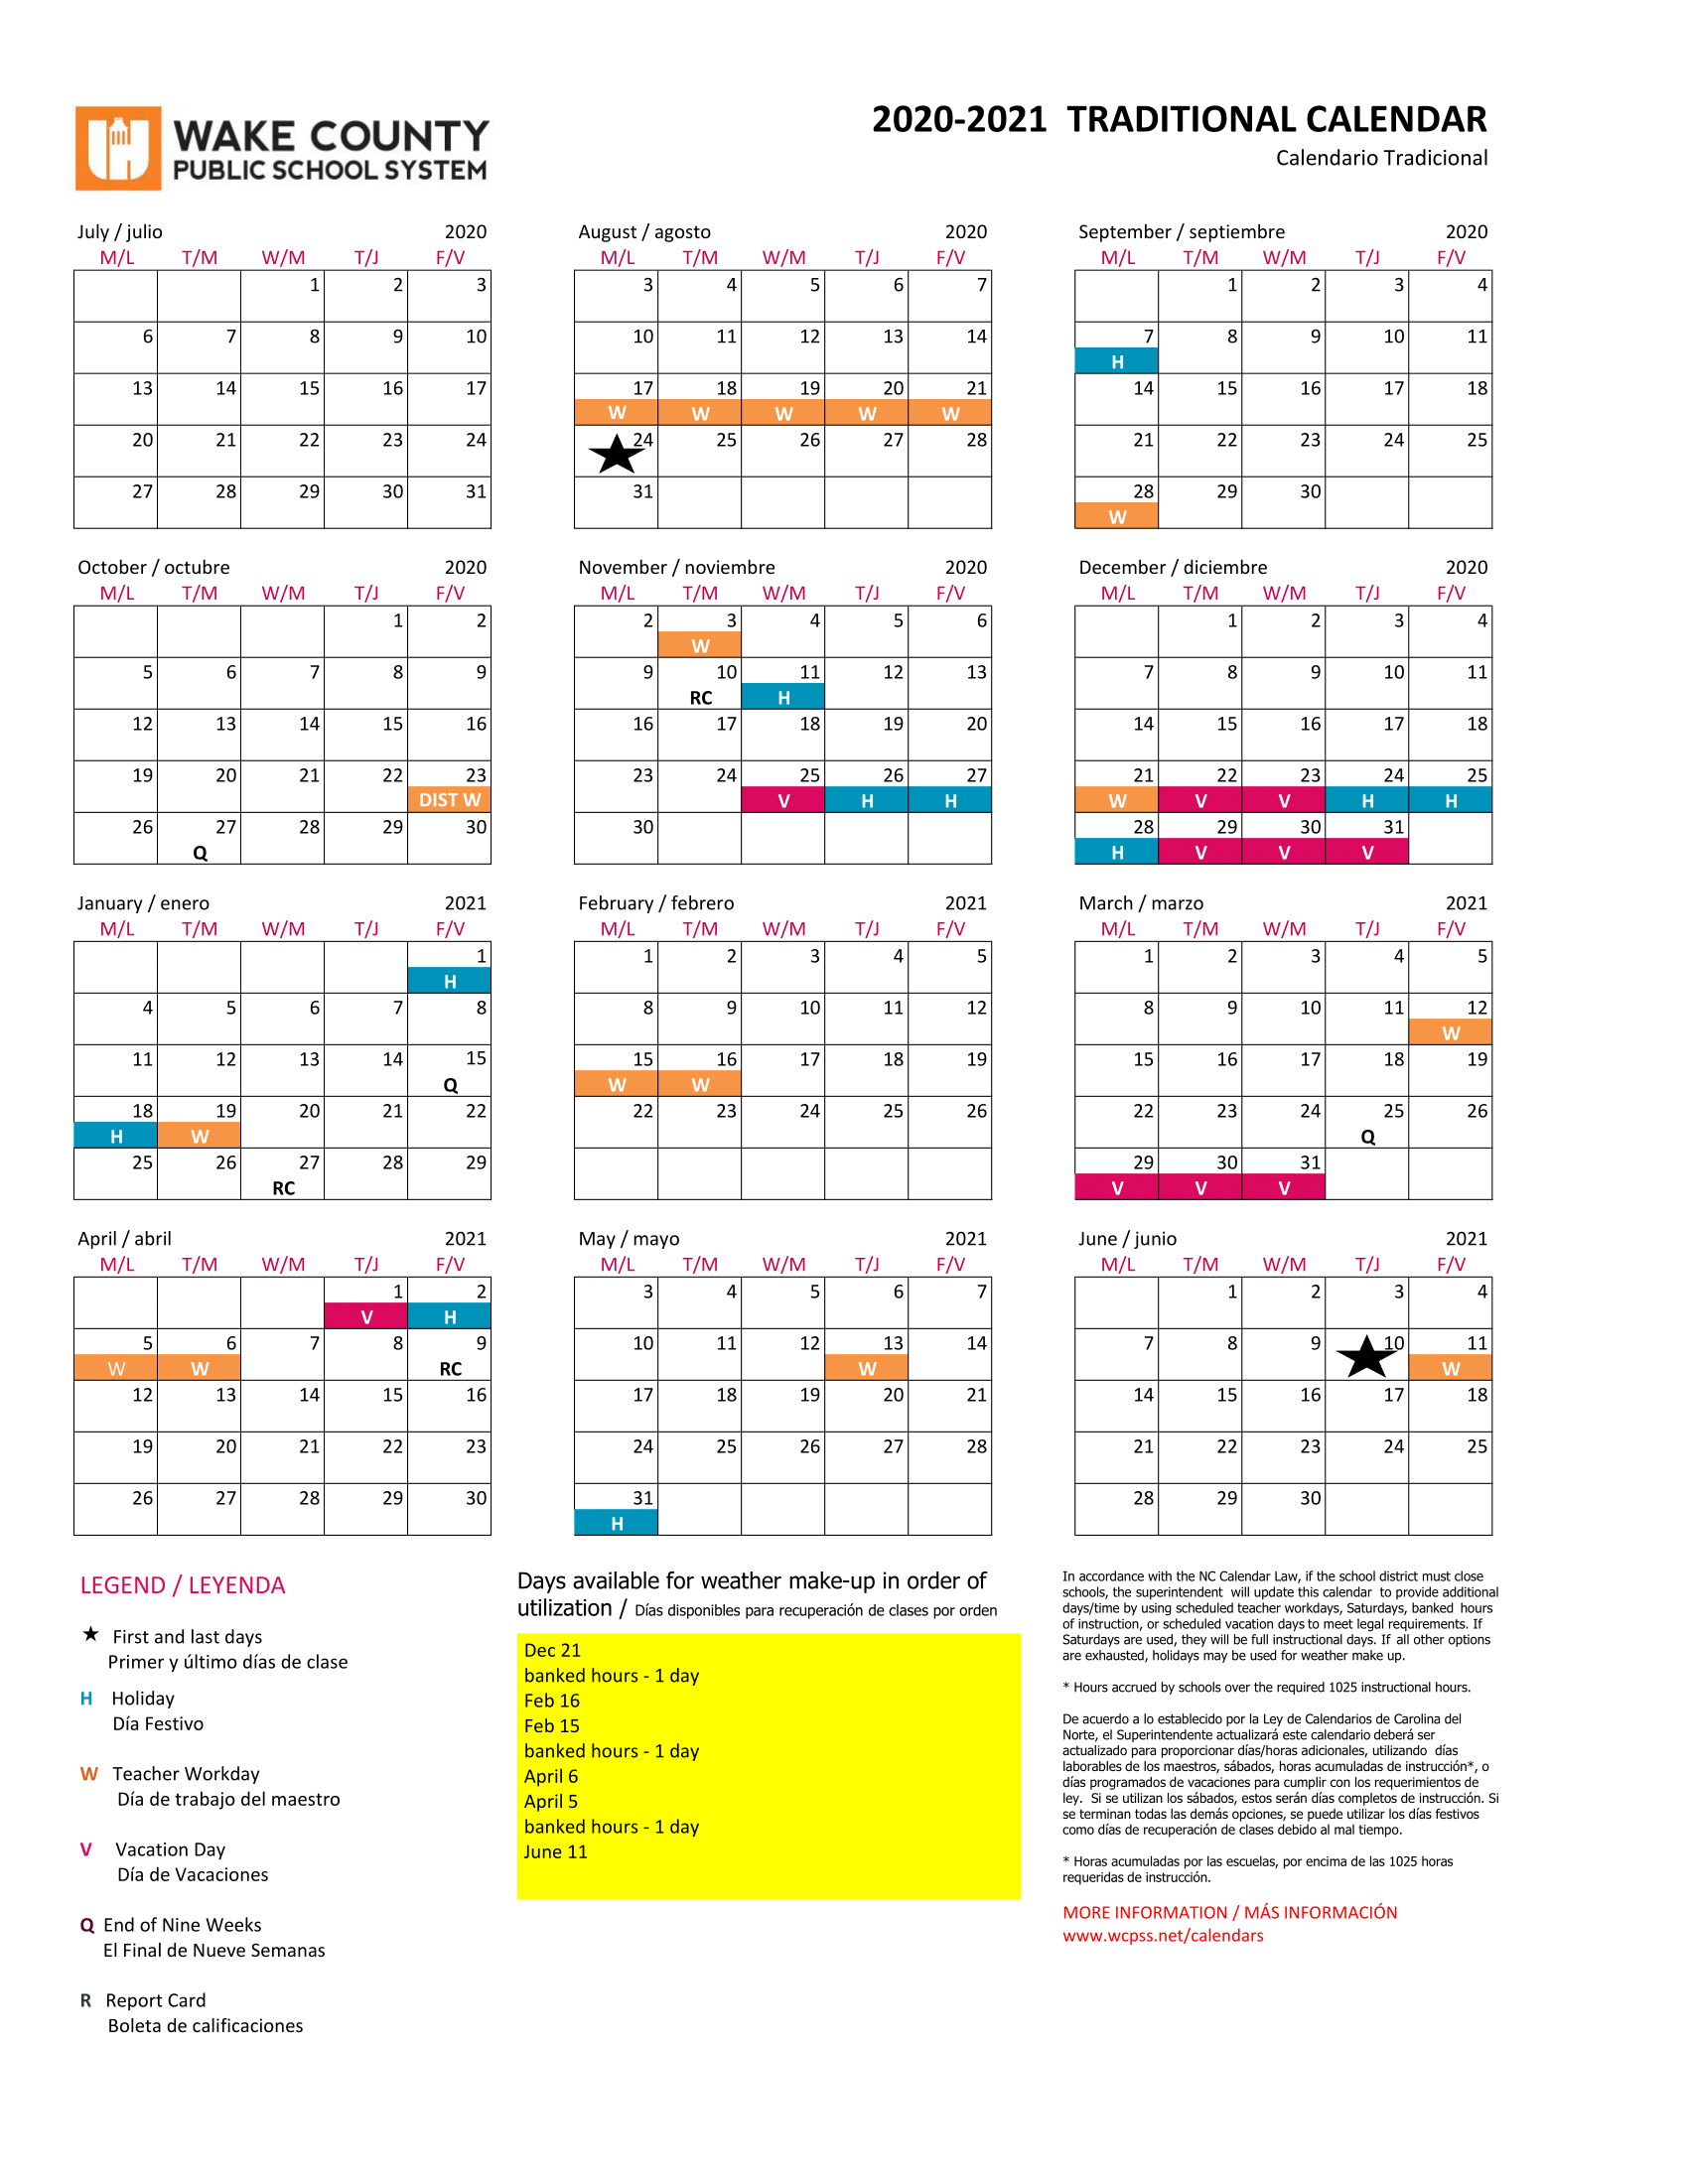 Wcpss Traditional Calendar 2021-2022